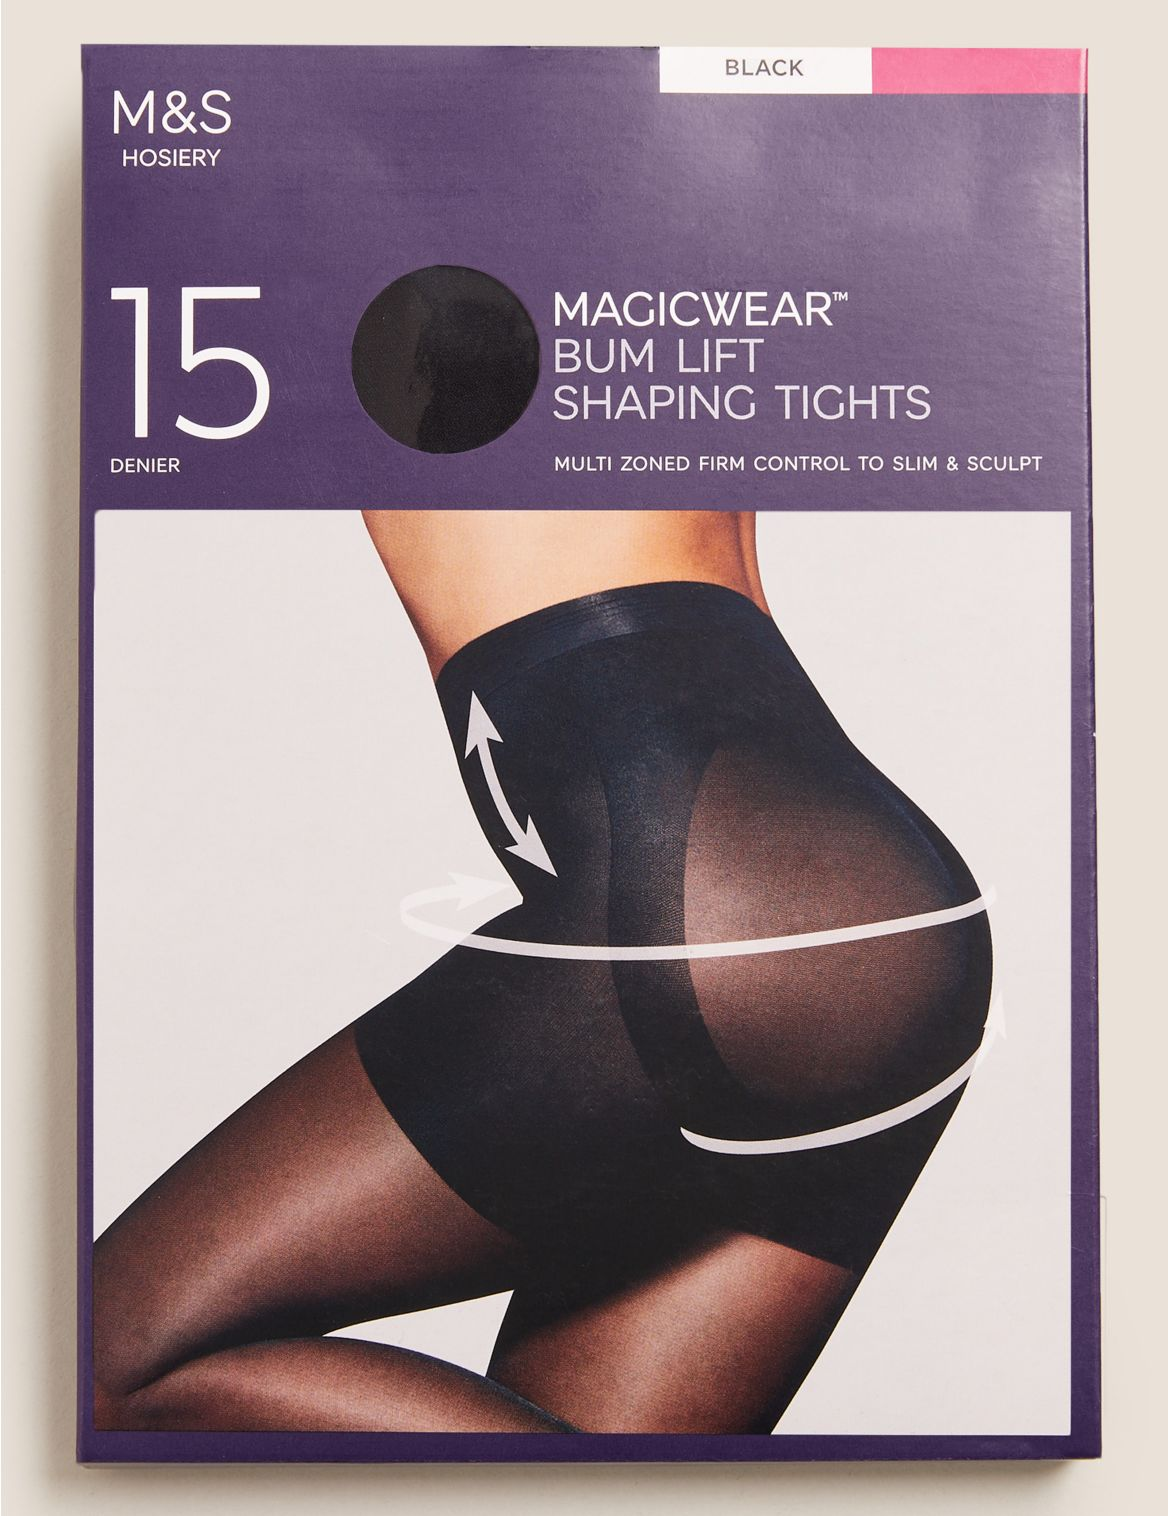 15 Denier Magicwear™ Matt Body Shaper Tights black